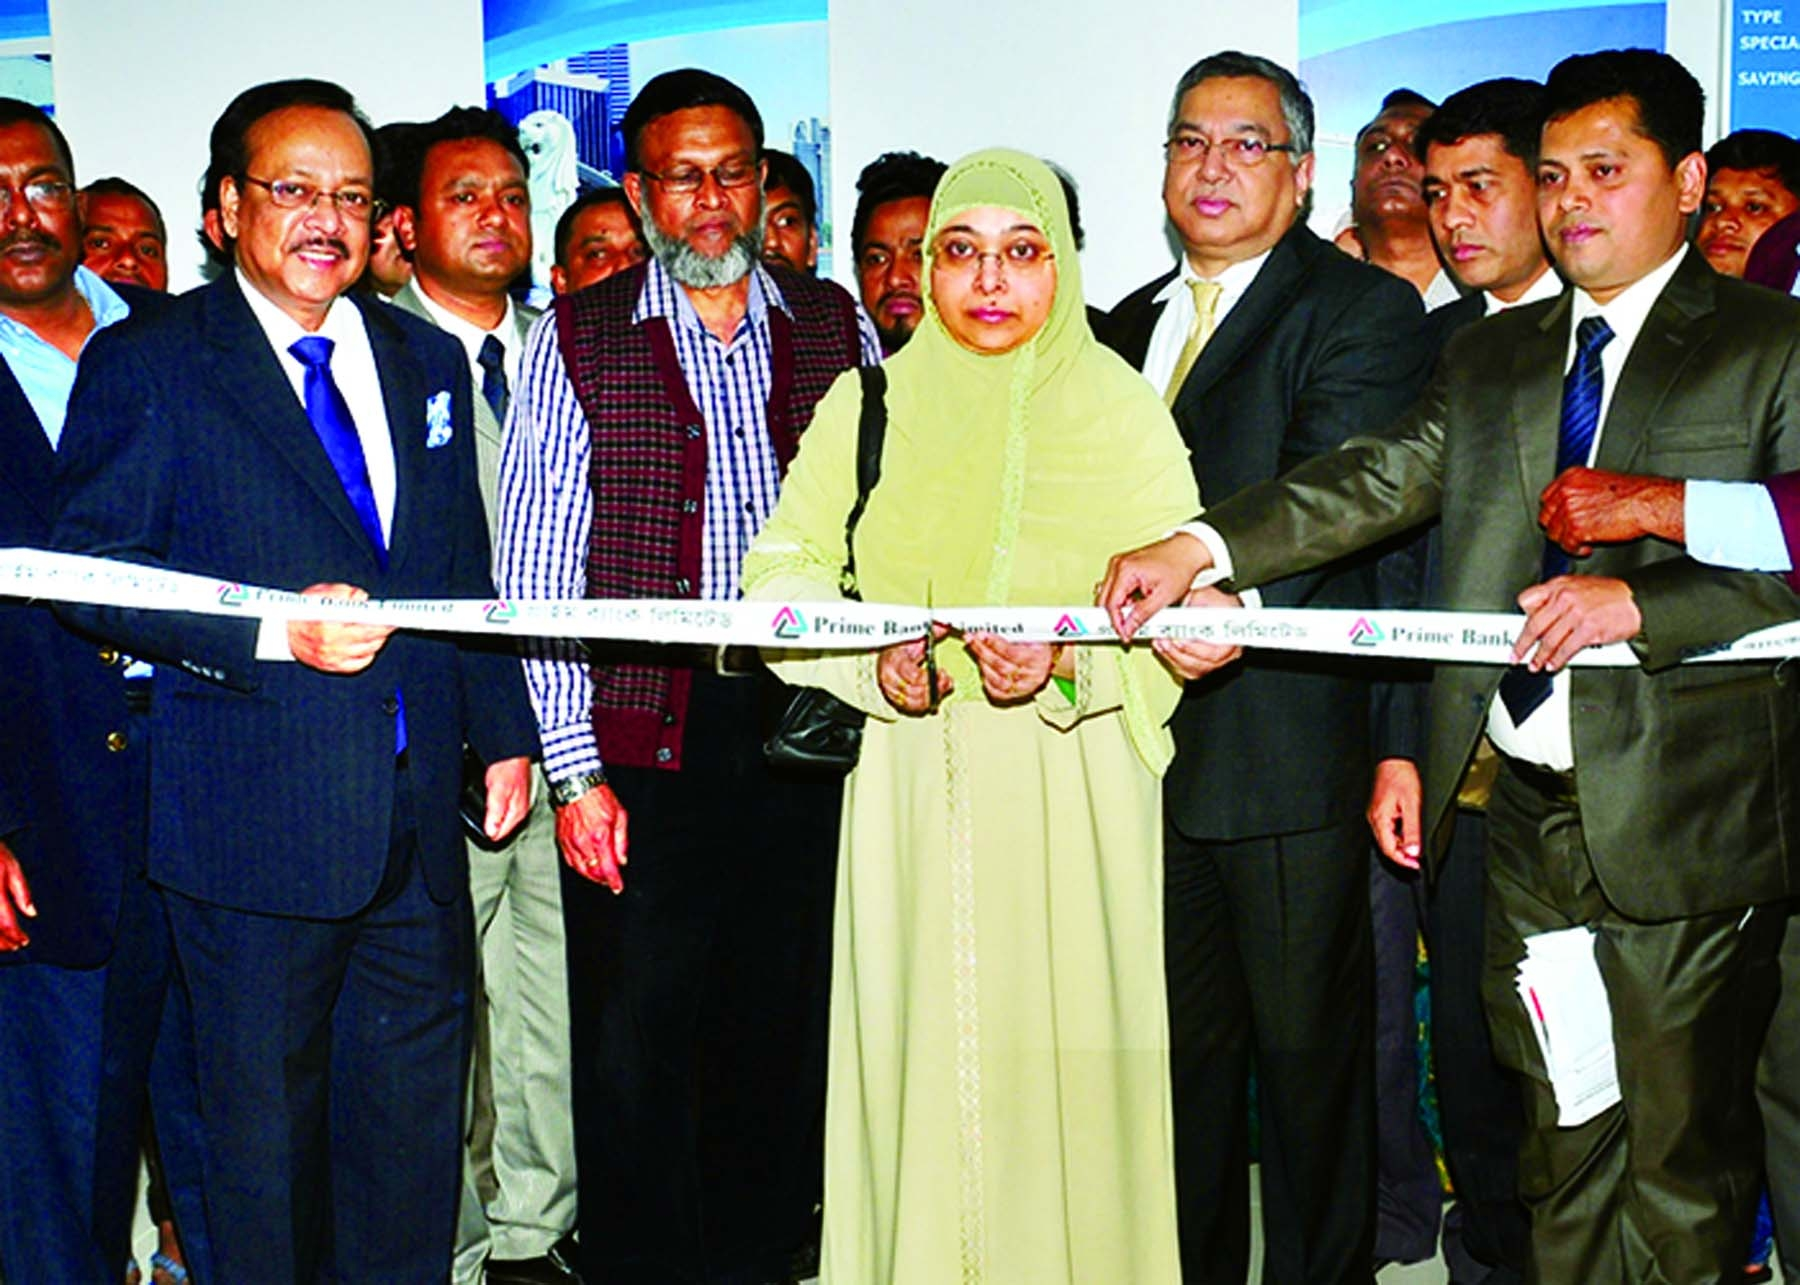 The 135th branch of Prime Bank Limited was opened in Magura on Tuesday. Director of the bank Salma Huq inaugurated the branch as the chief guest while former chairman and ex-member of parliament Qazi Saleemul Huq was present as a special guest with Managing Director and CEO of the bank Md Ehsan Khasru in the chair.